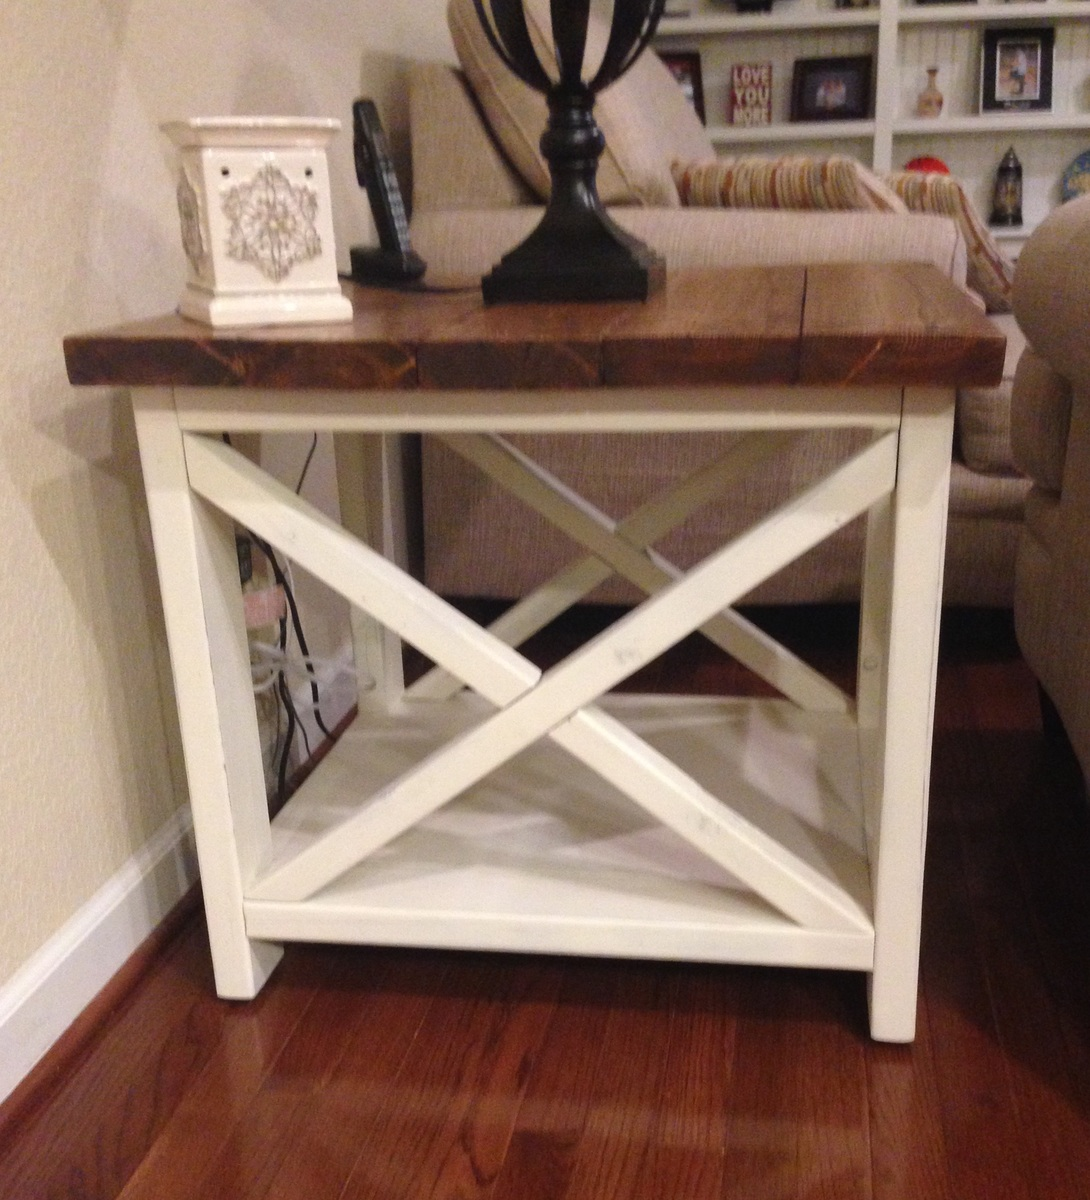 Ana White Rustic X End Table Diy Projects Ana White - Rustic x end table